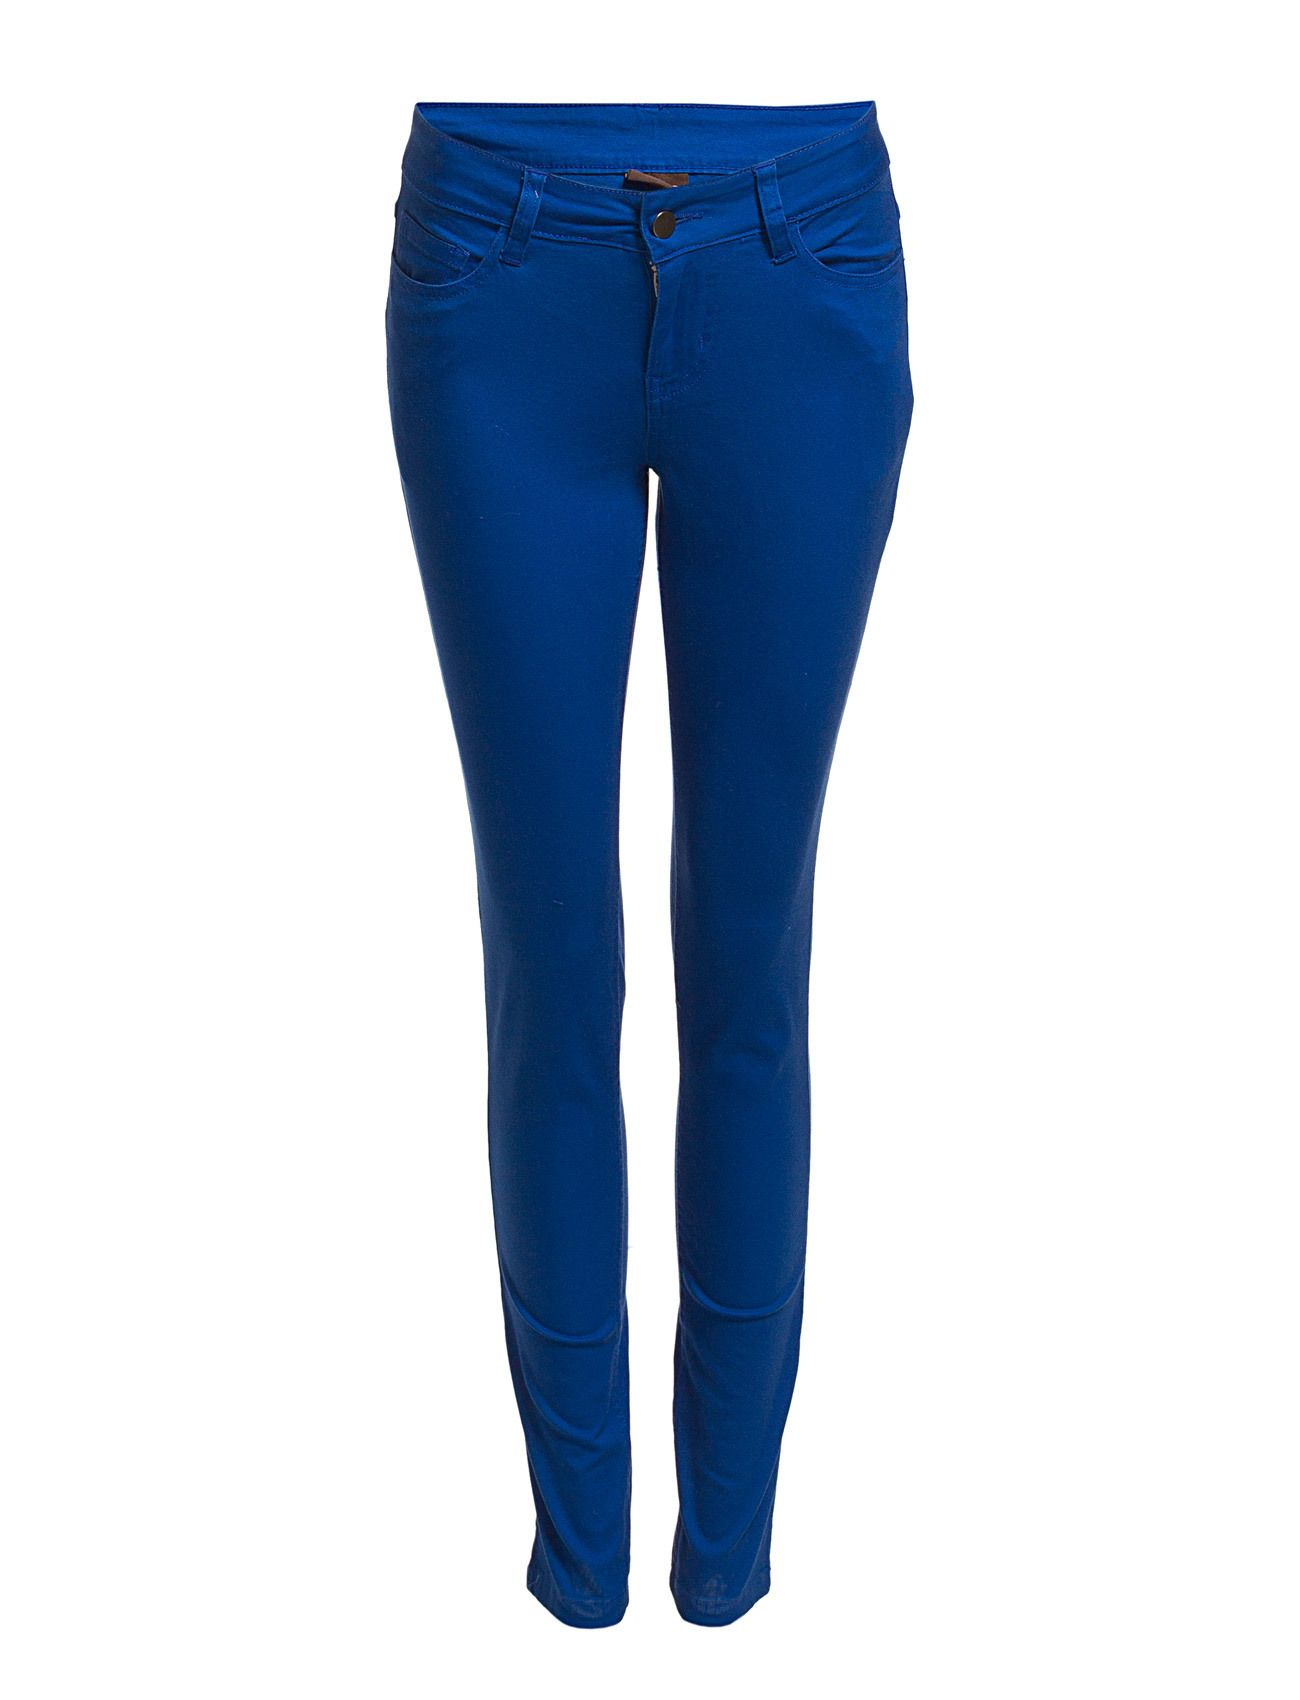 the perfect shade of bright blue. i want these!